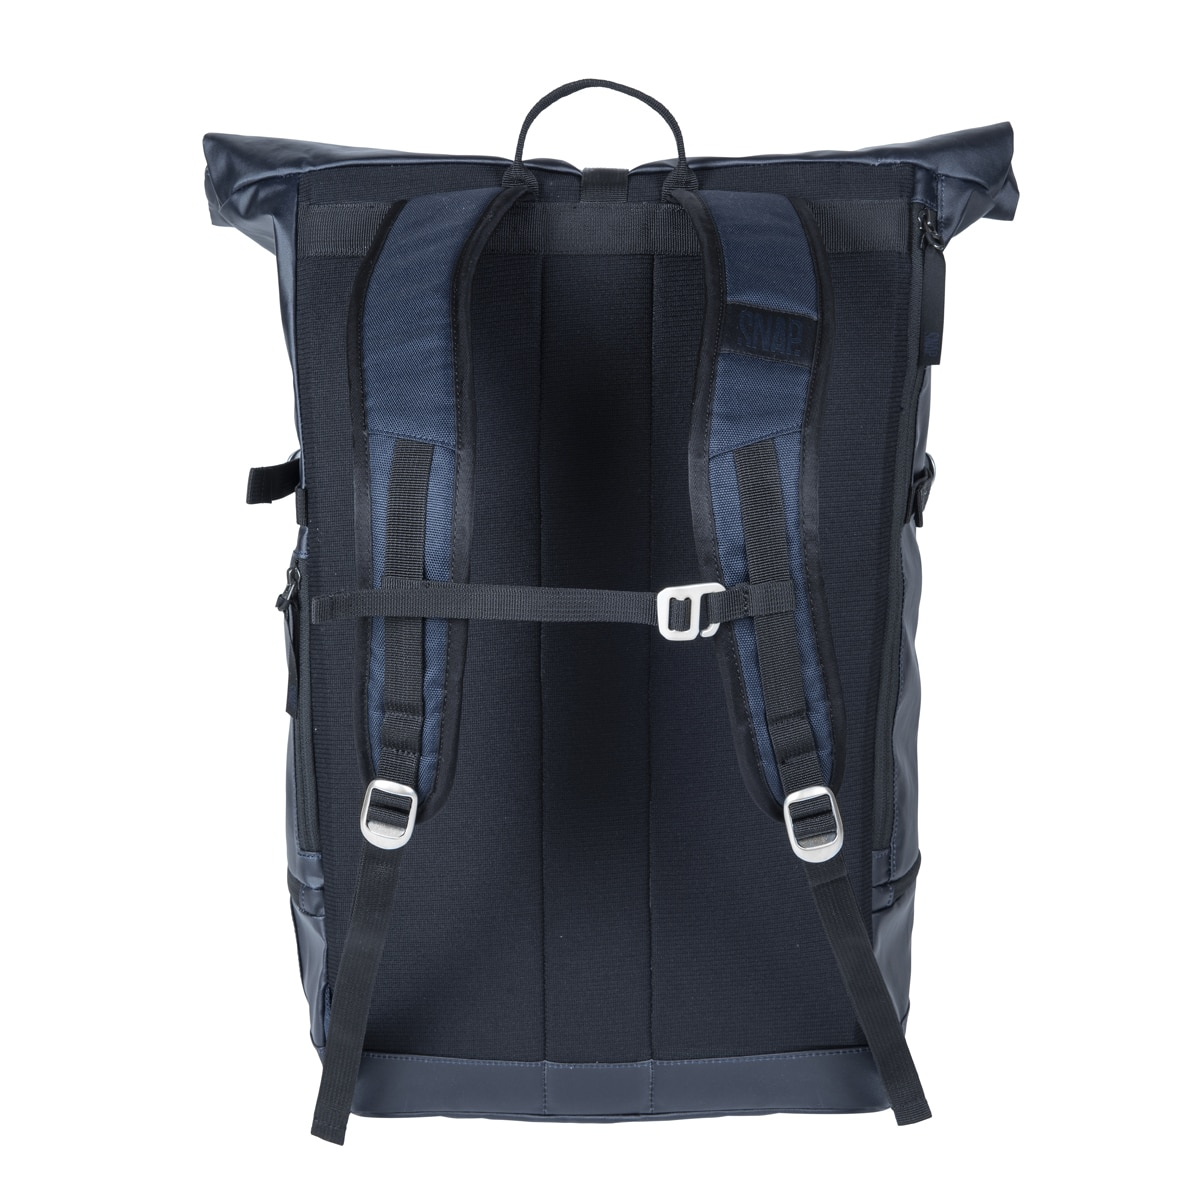 waterproof laptop backpack stylish